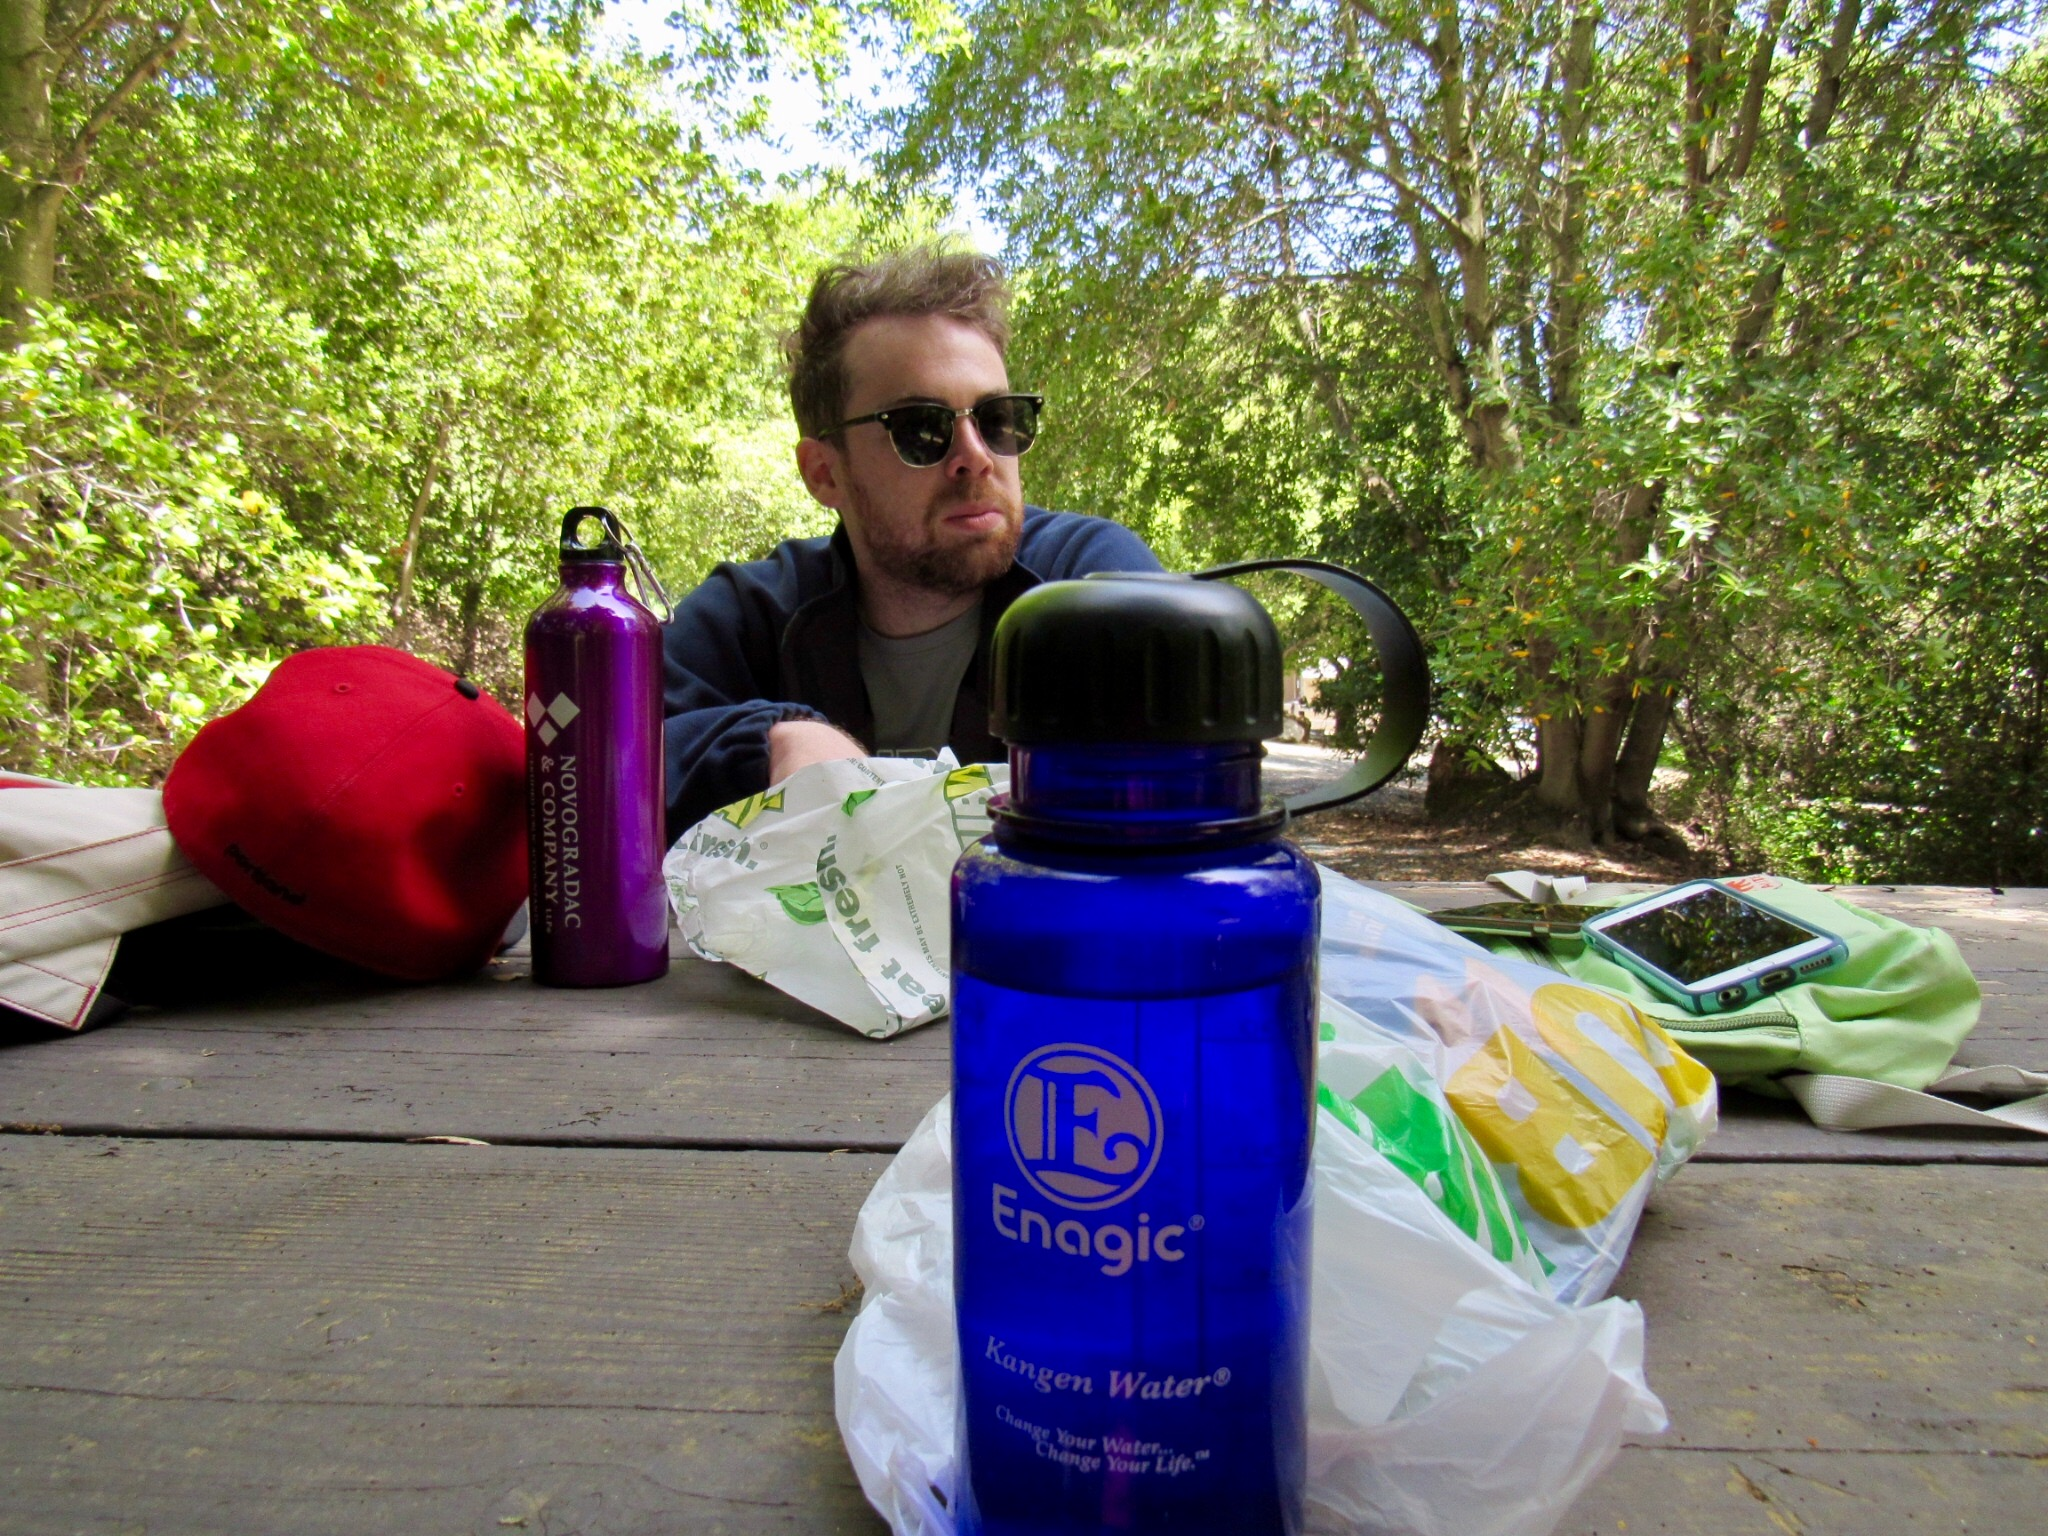 Las Trampas Regional Wilderness has a great picnic area, so feel free to pack a lunch. Subway is a always a great choice.